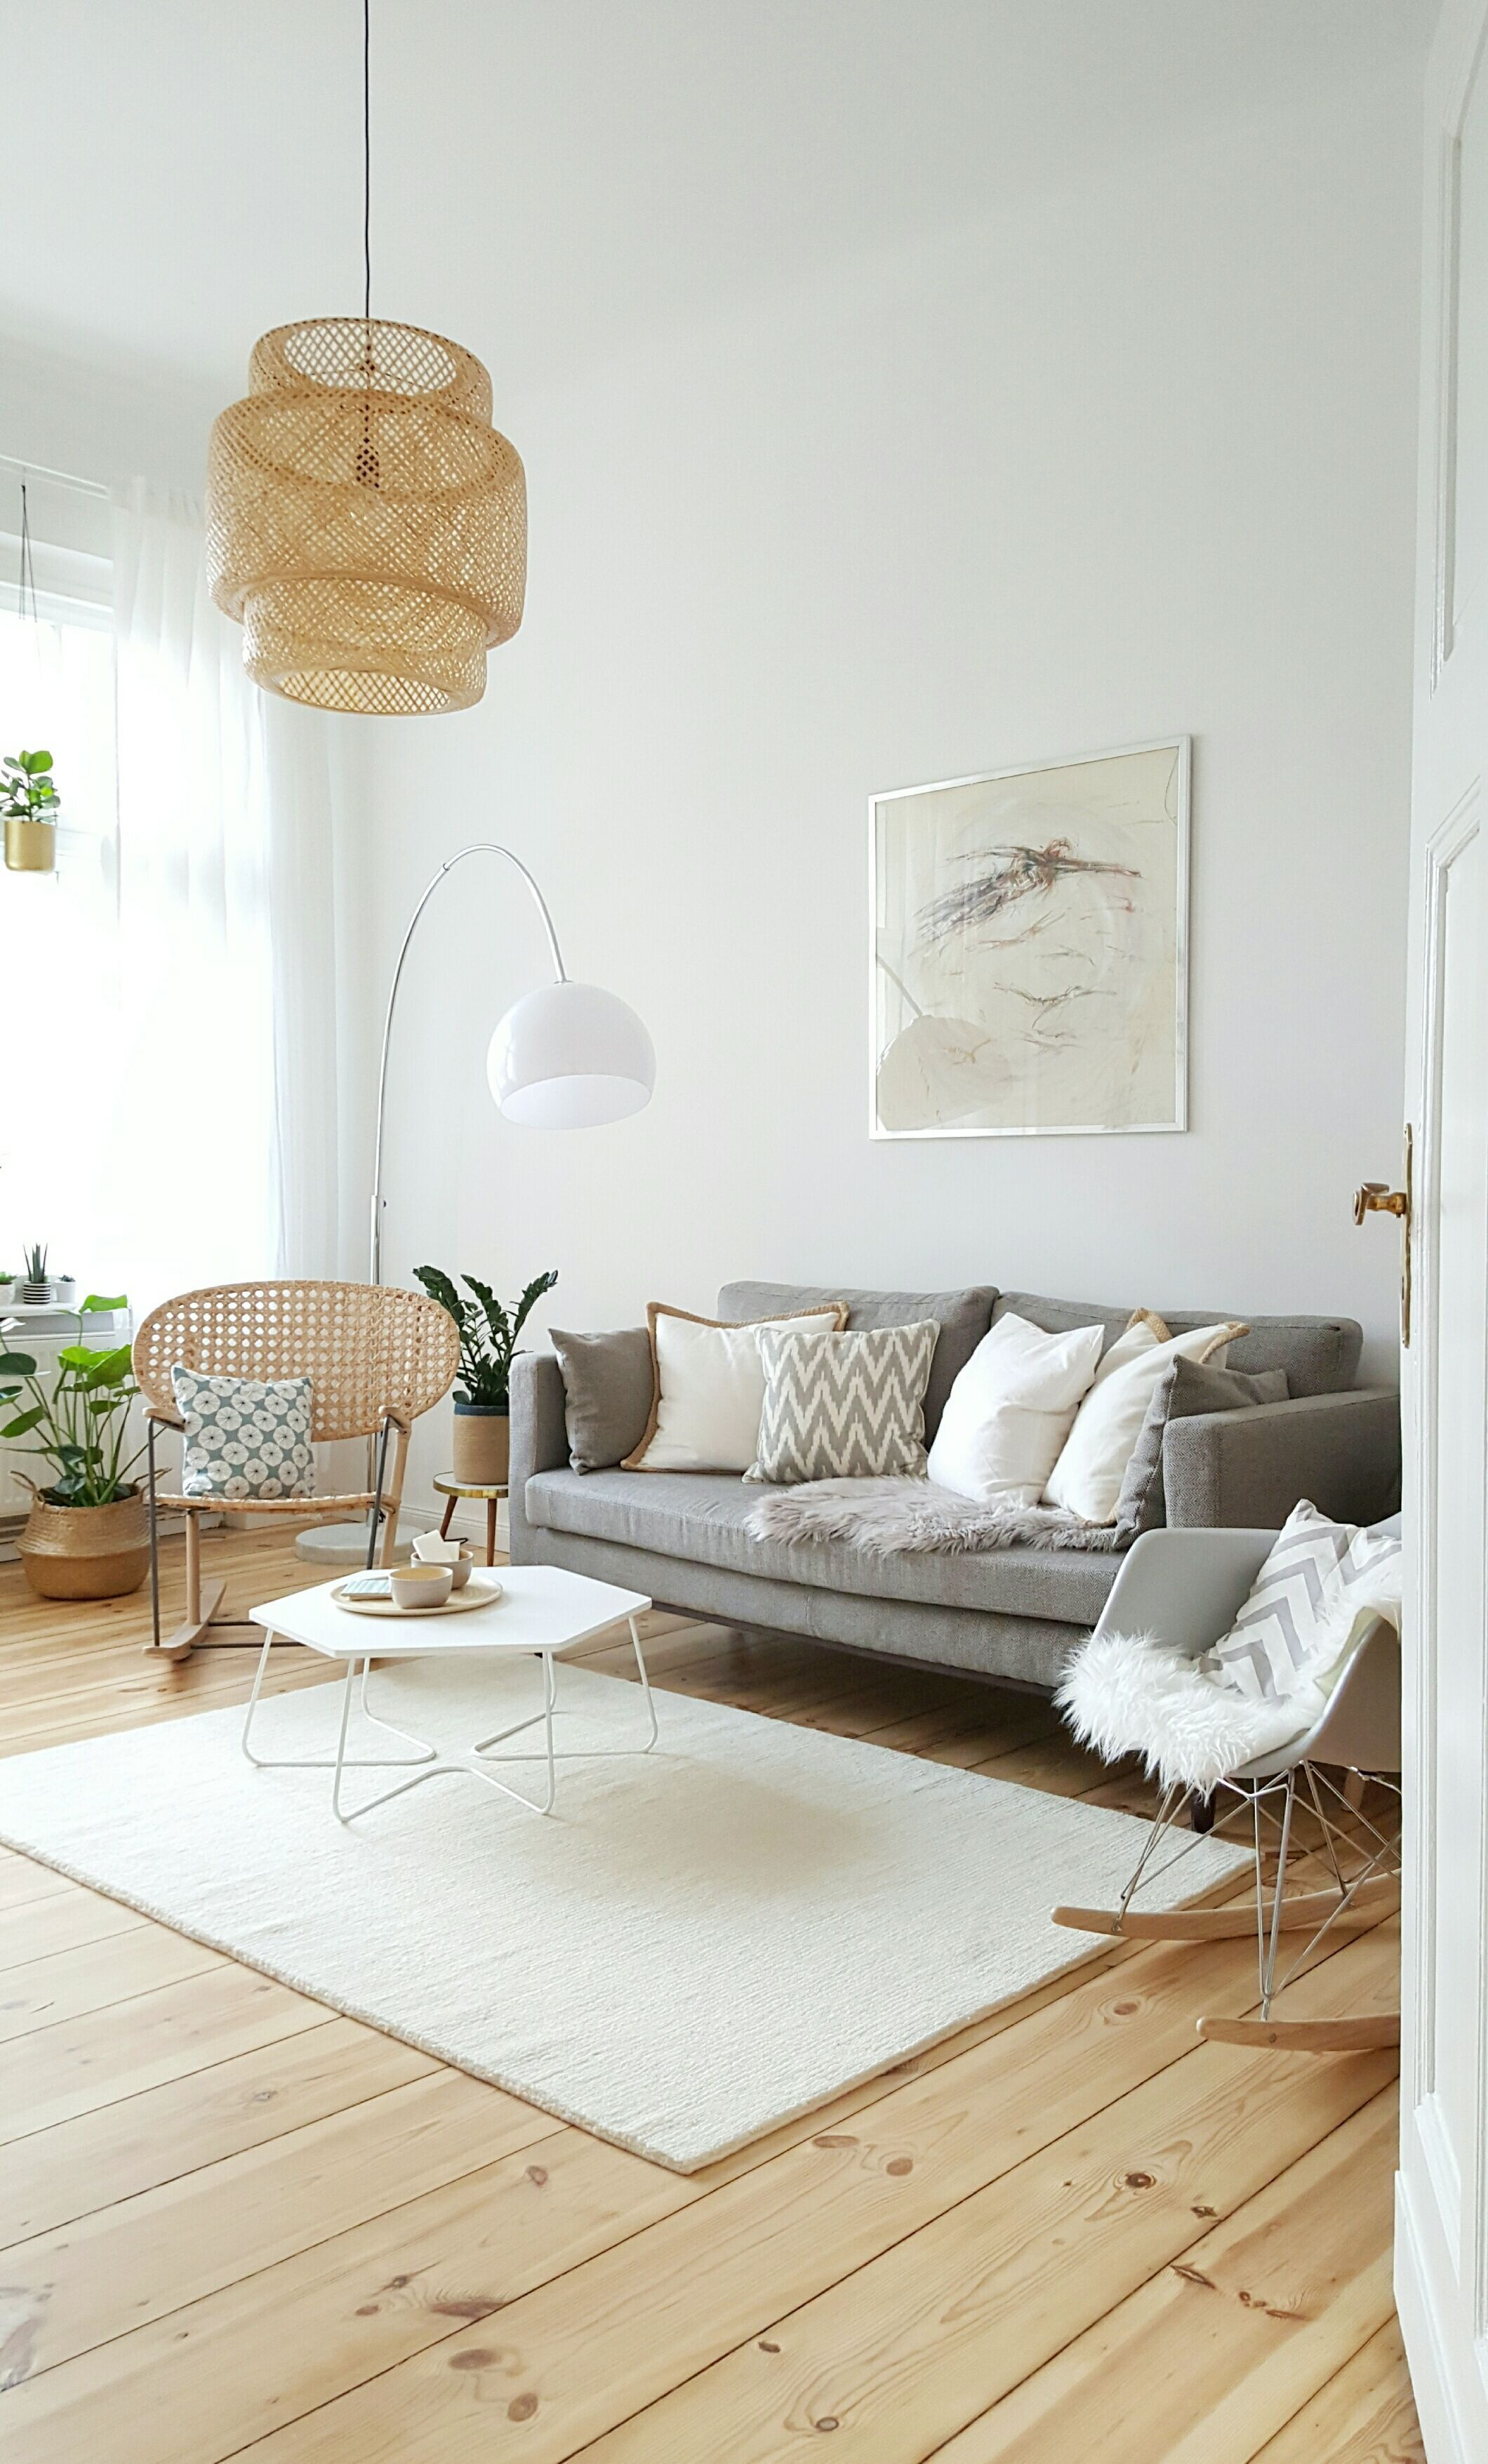 Bright and modern living room with a grey couch a white rug and a